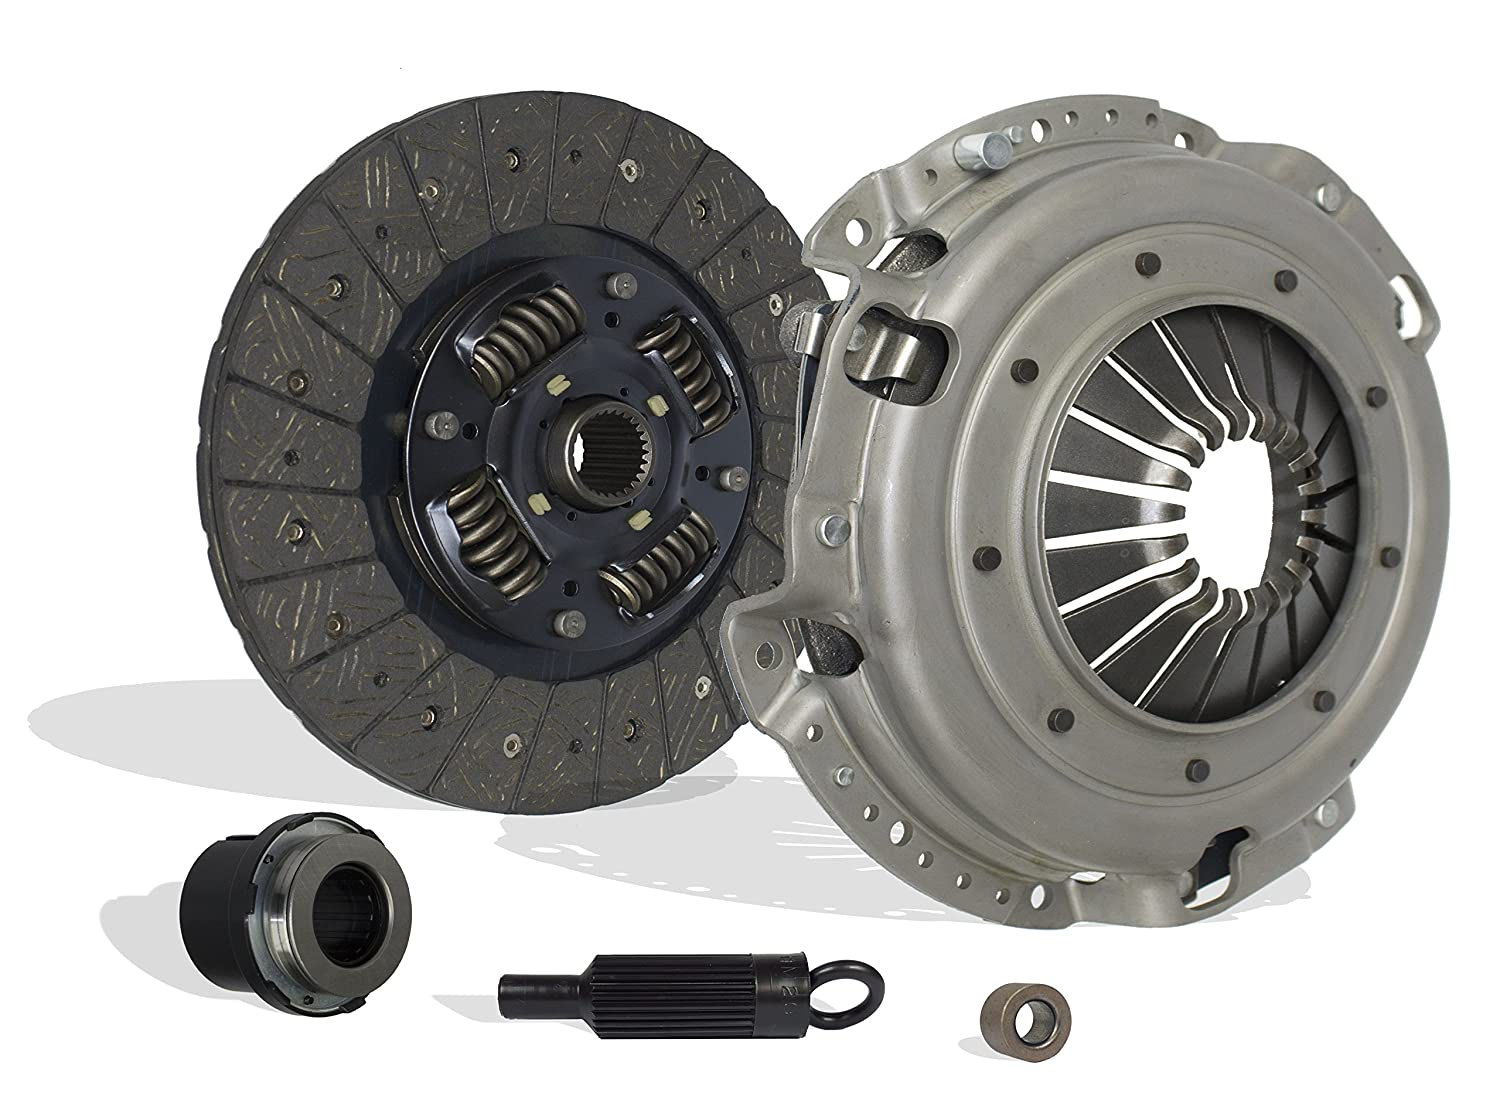 Clutch Kit Works With Chevrolet Camaro Pontiac Firebird Base RS Coupe Convertible 2-Door 1996-2002 3.8L V6 GAS OHV Naturally Aspirated